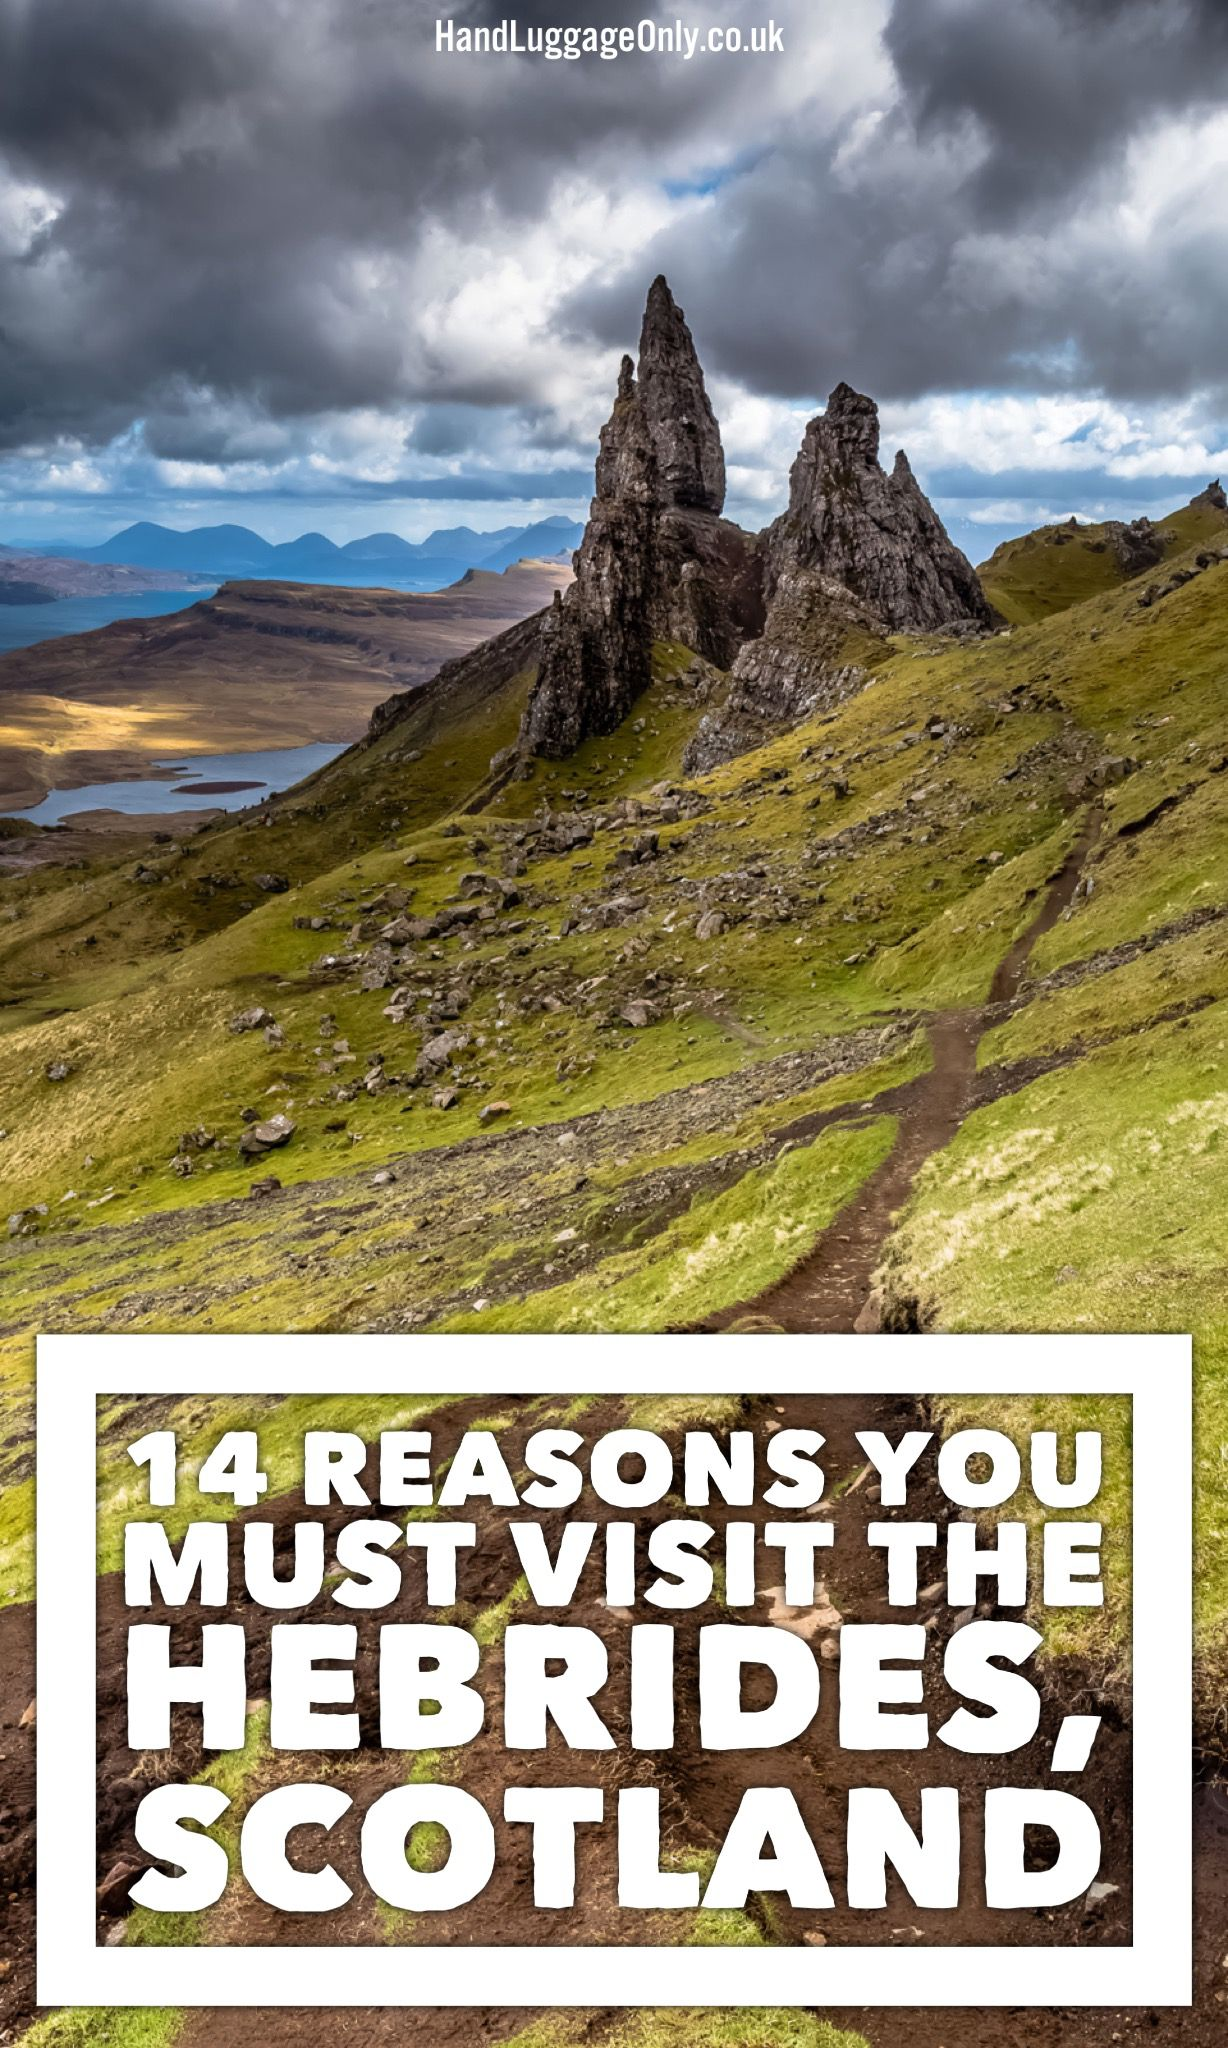 14 Reasons You Have To Visit The Hebrides in Scotland! (1)